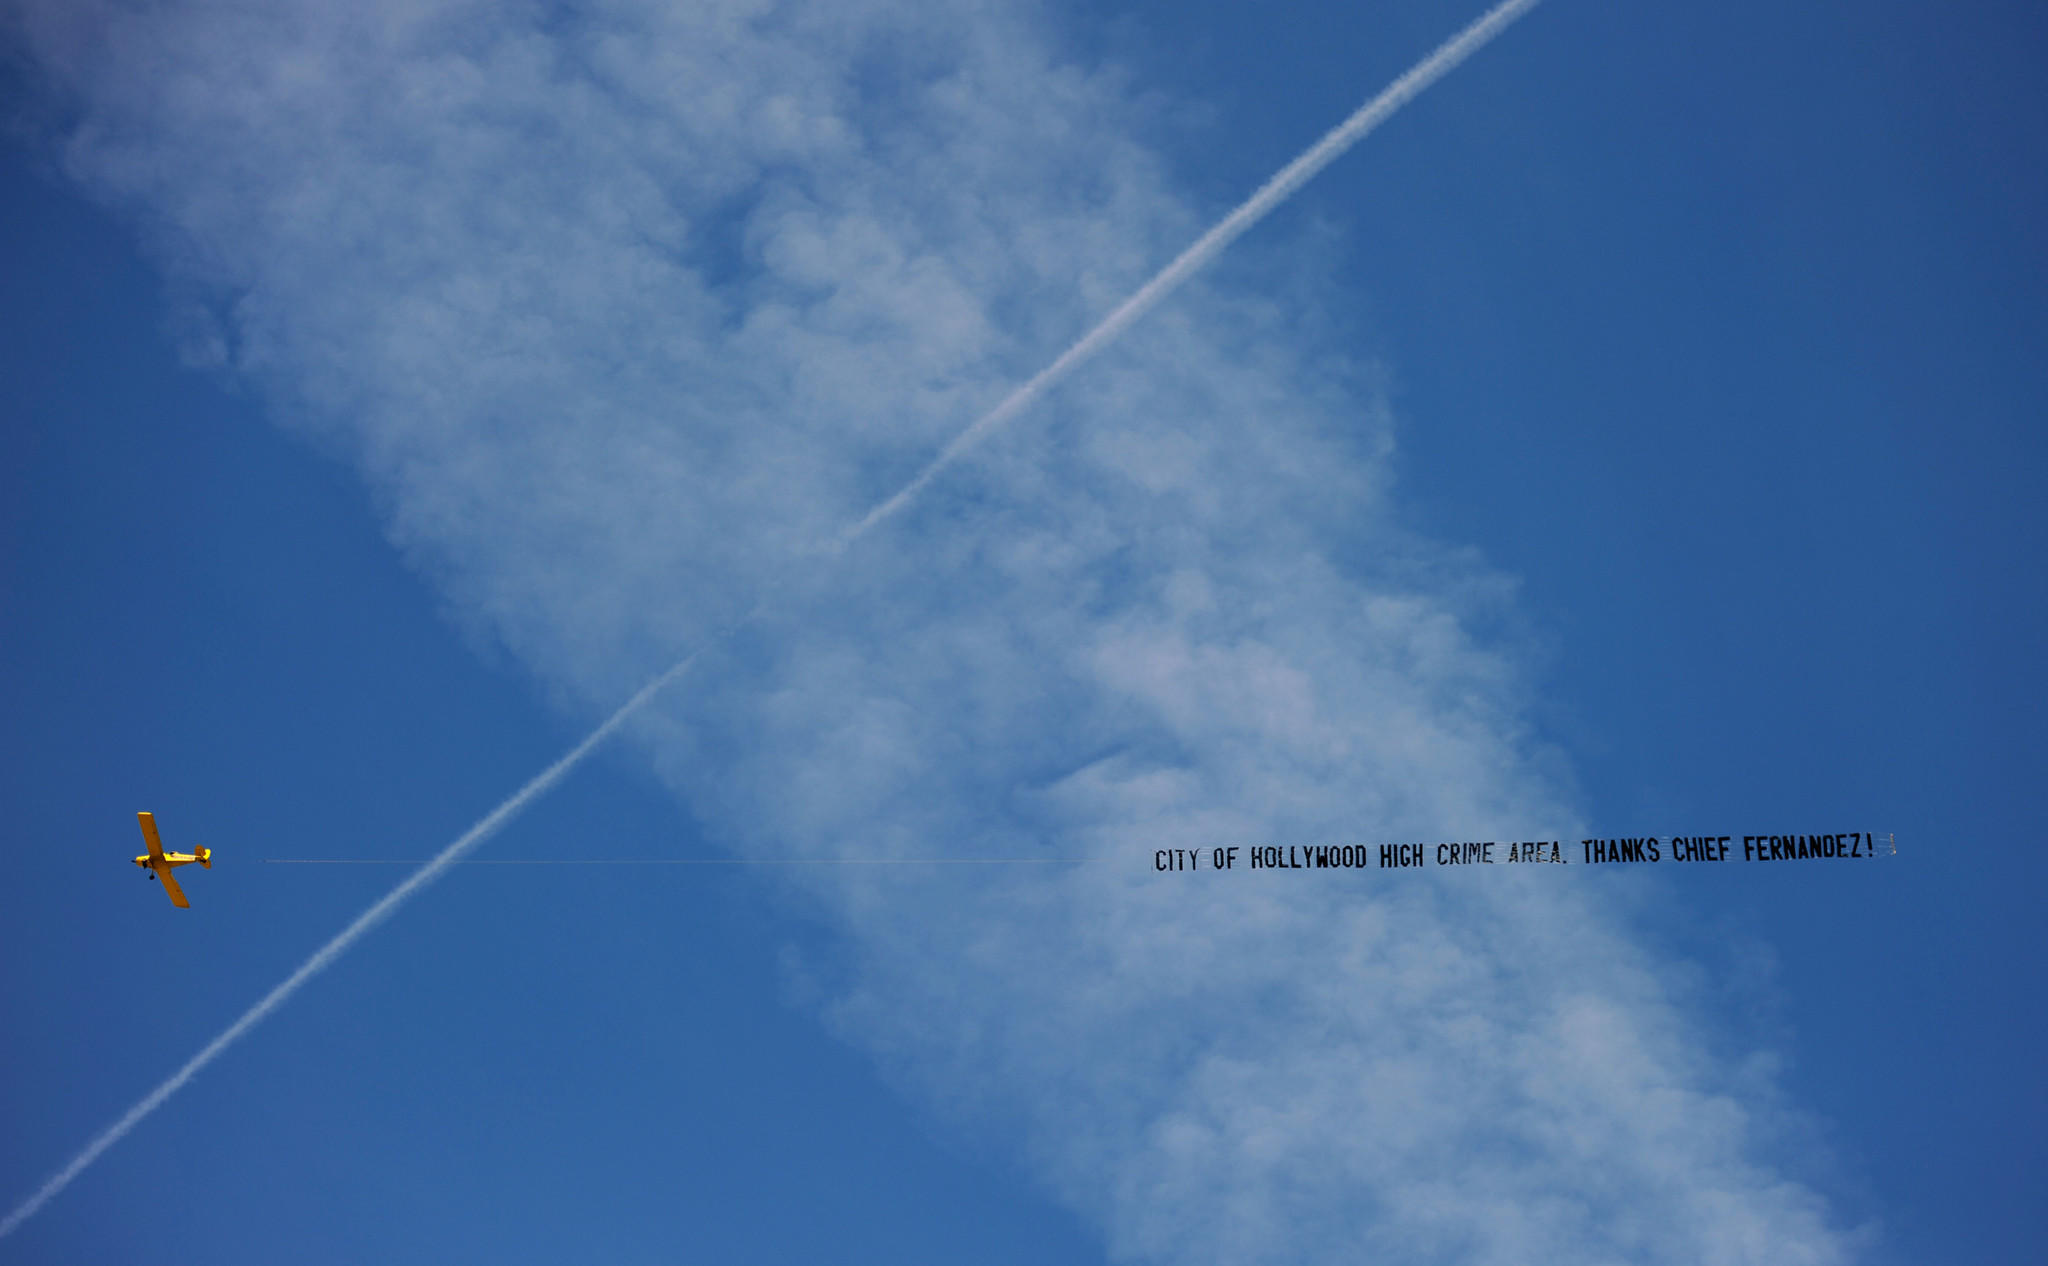 A plane carrying a banner warning of high crime in Hollywood flew over the beach and downtown Hollywood on Sunday. The banner, paid for by the police union, blames it all on the chief.